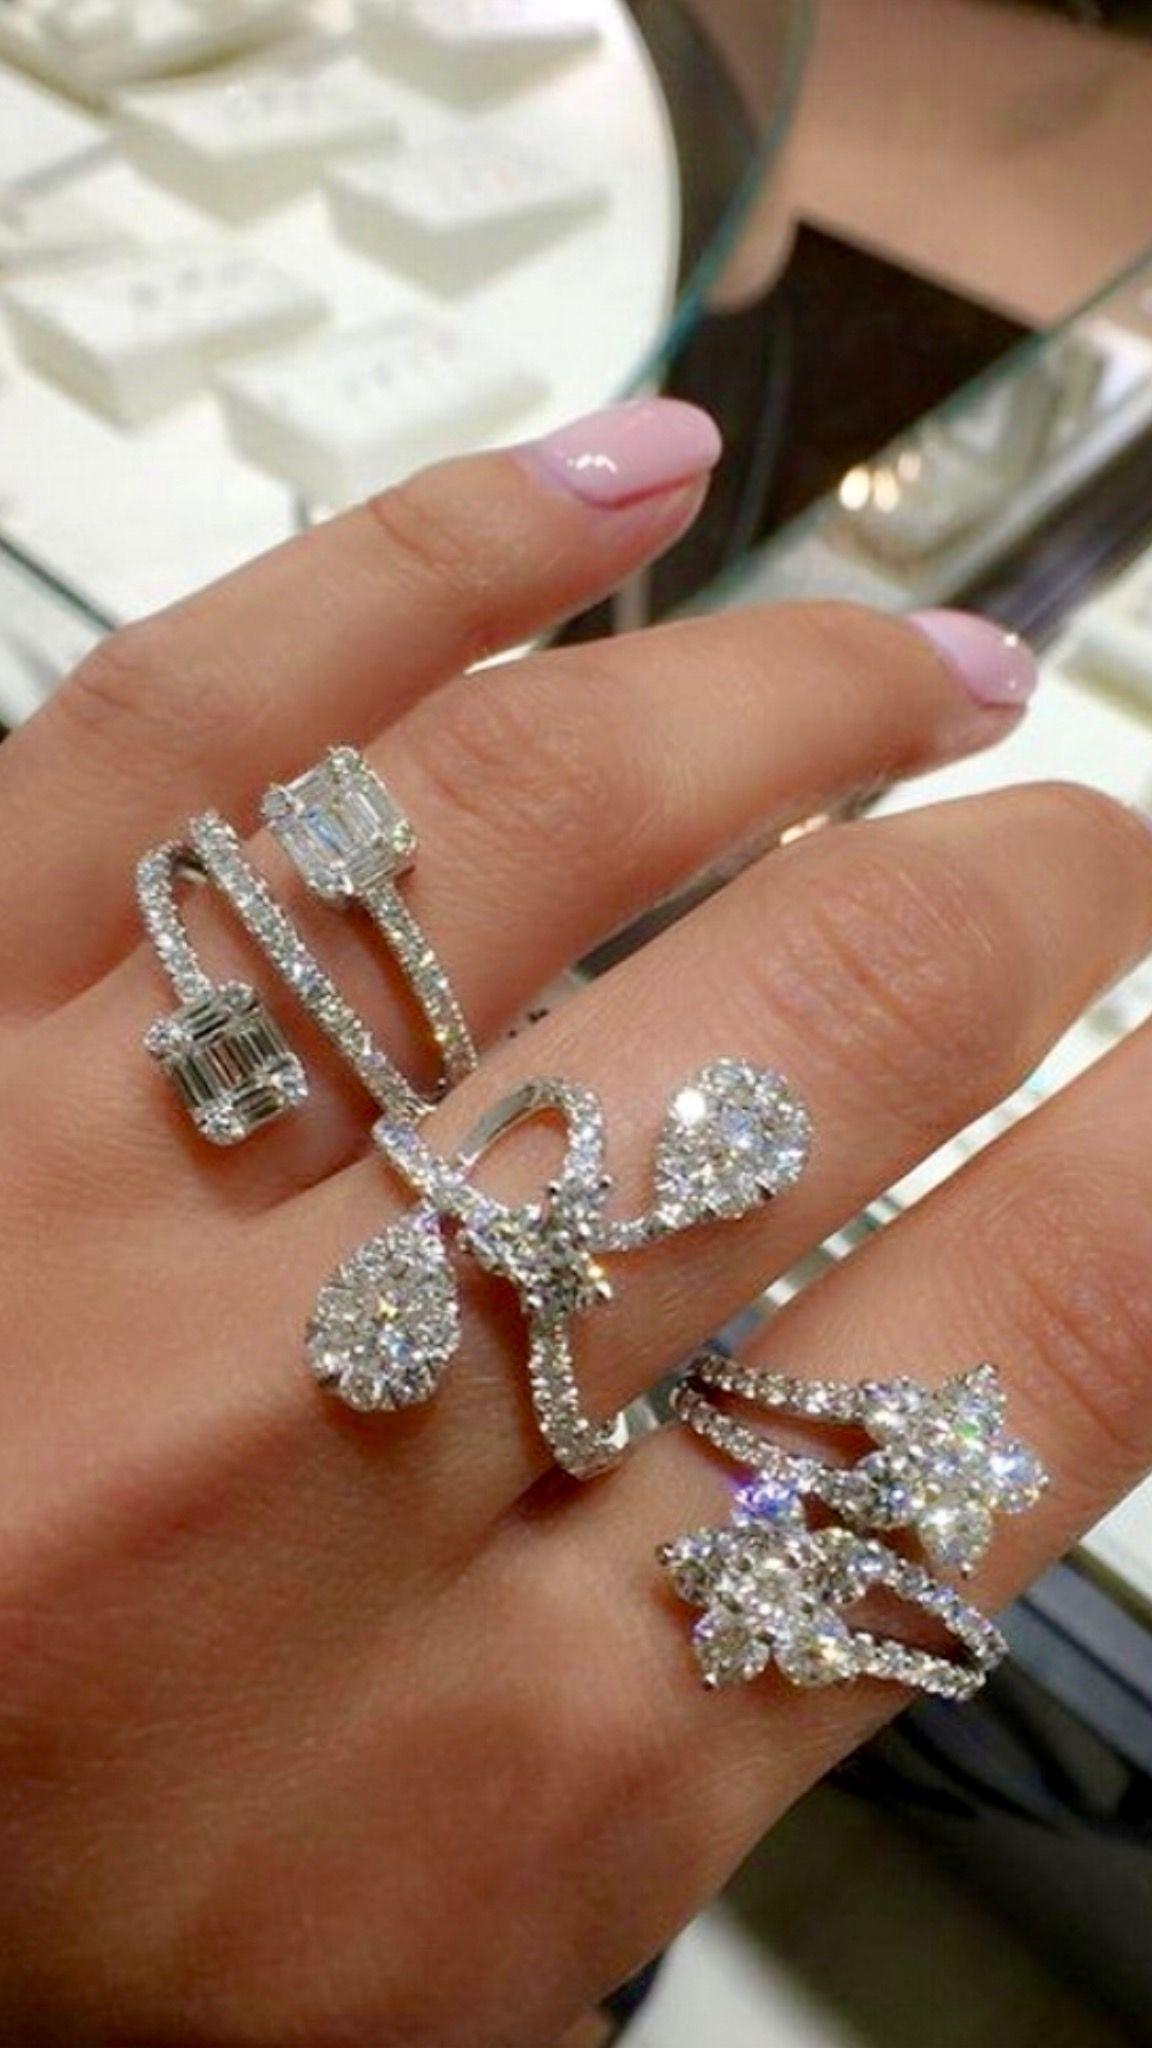 jewelry index s hampshire new flawless ring rings jewelers stores engagement internally dantela maine diamond springer